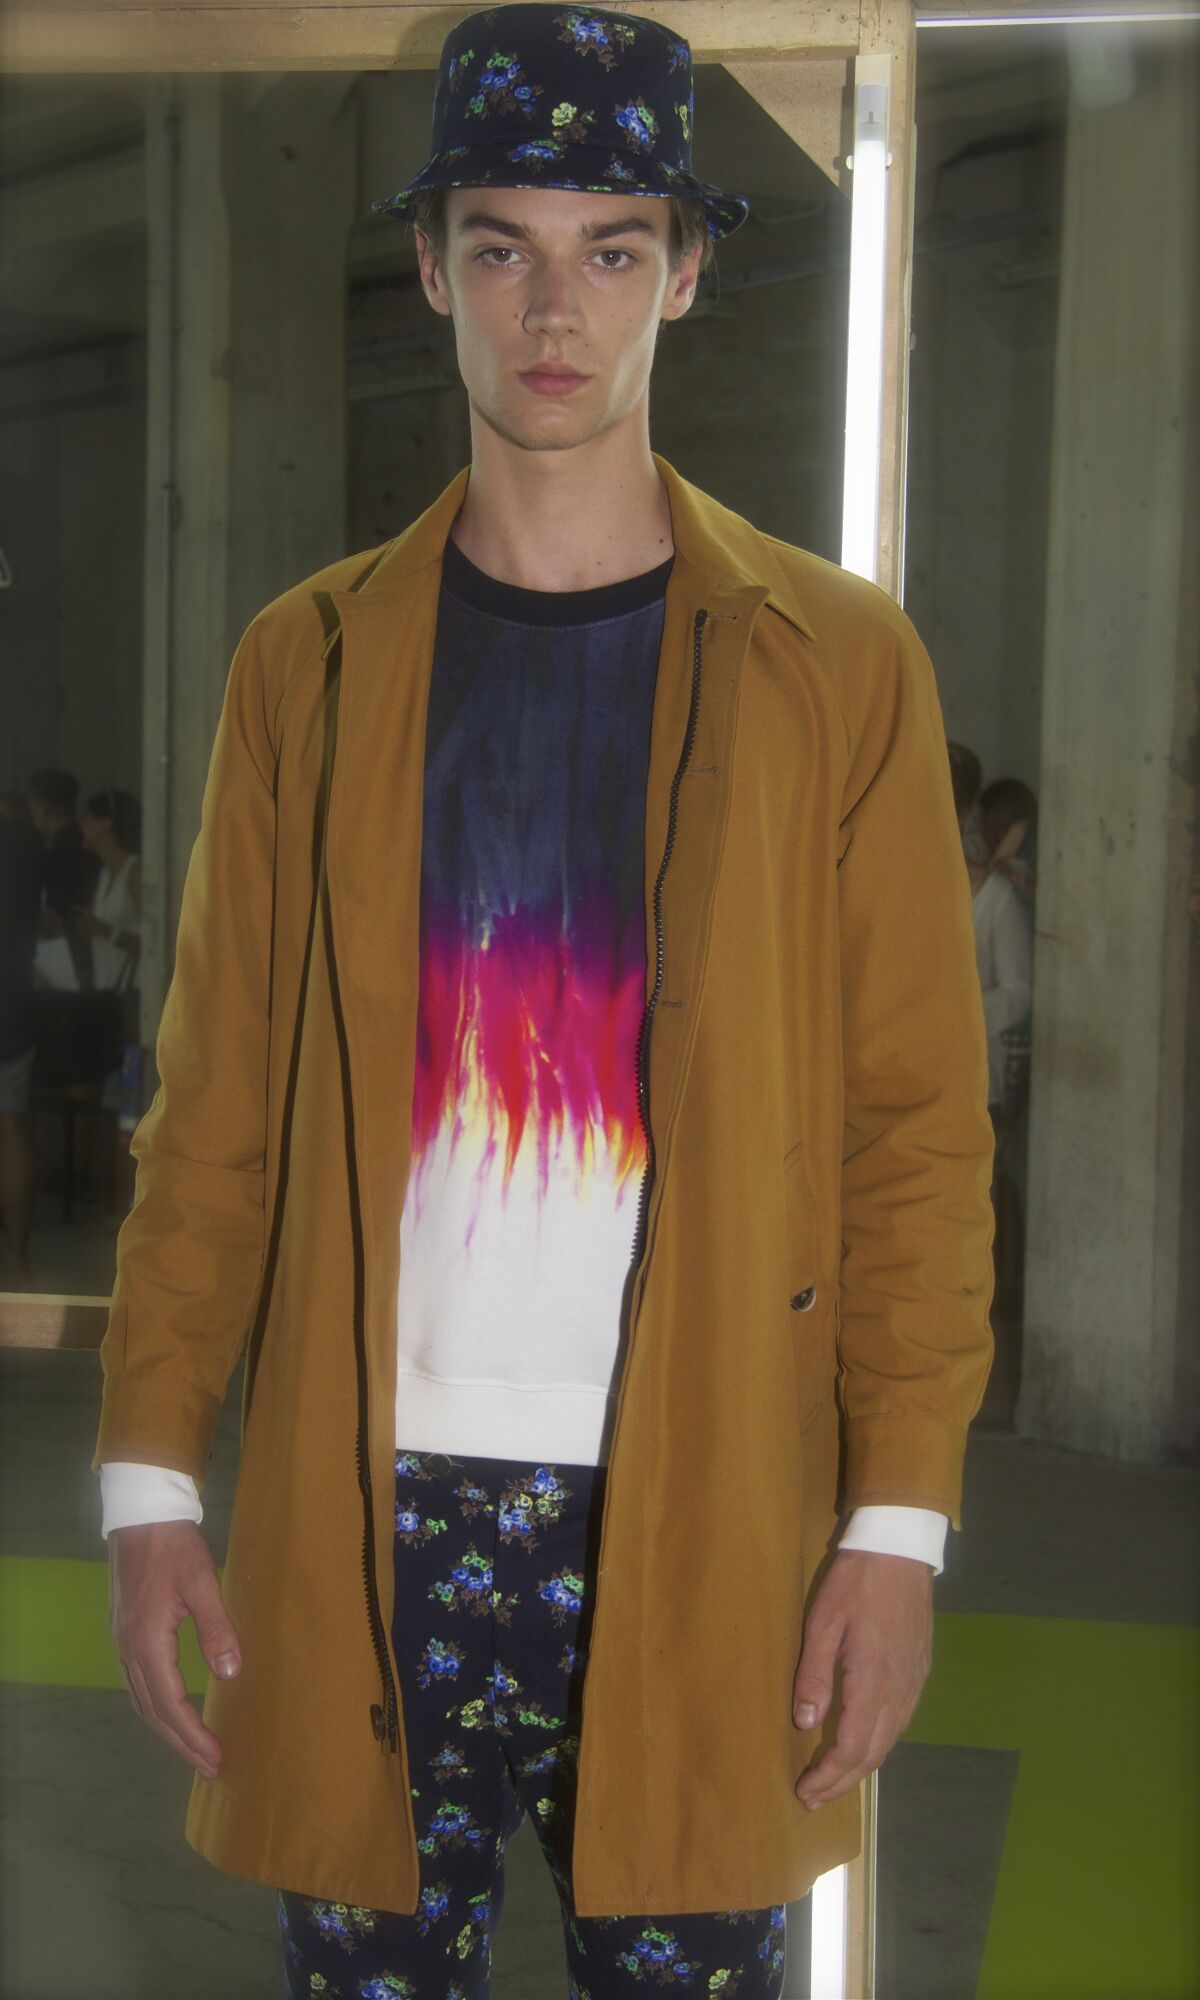 Msgm Spring 2014 Men's Collection Pitti Immagine Uomo